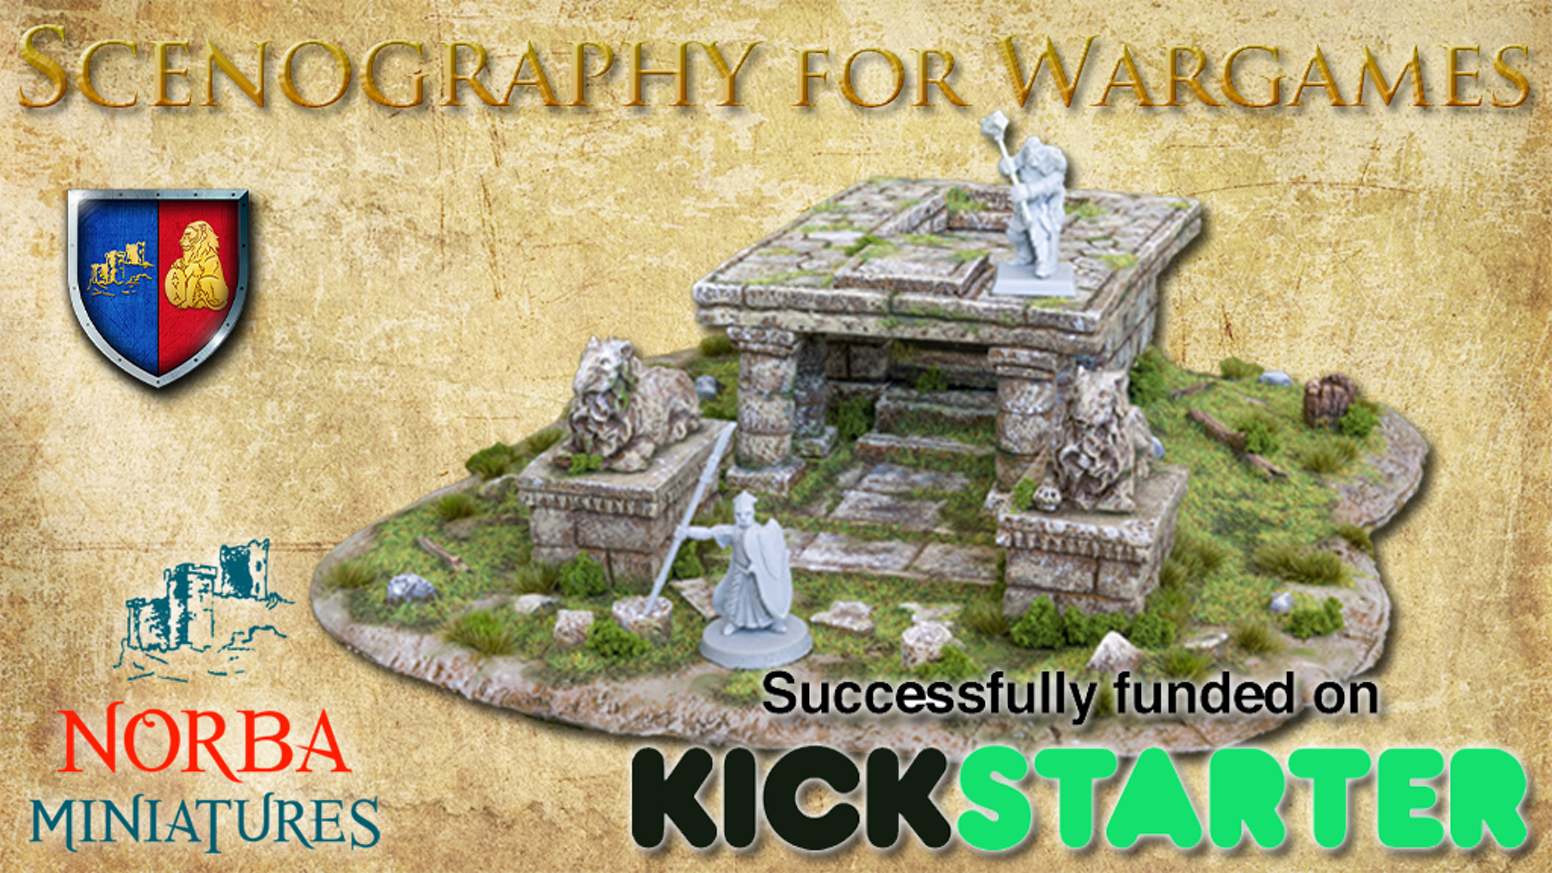 Scenography for Wargames by the spanish company Norbaminiatures, 28mm, scenery, terrain. Always offering quality at a fair price.